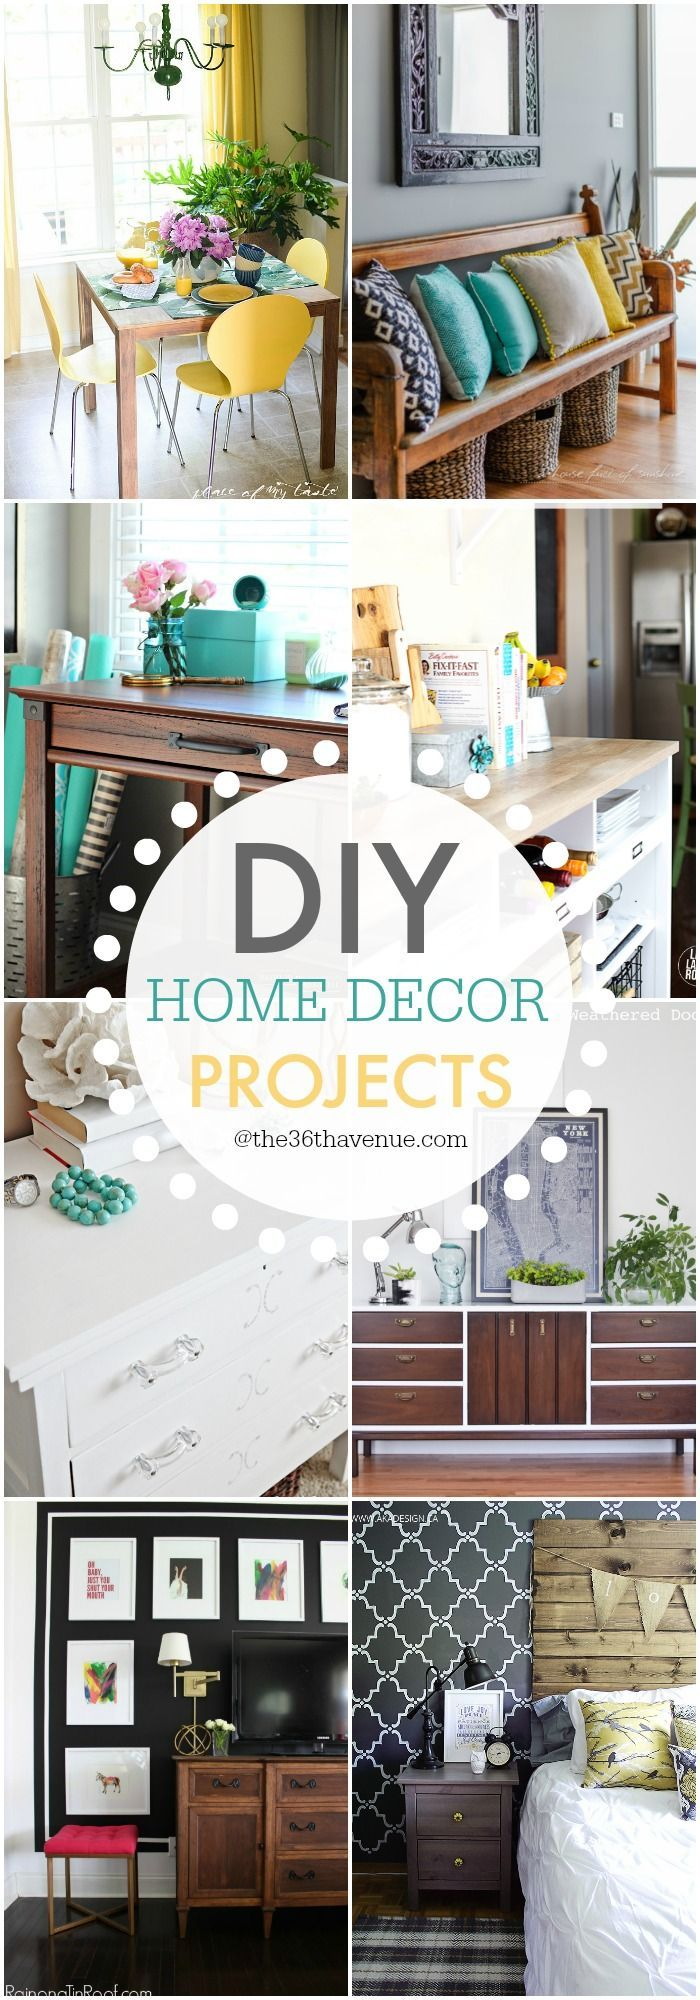 293 best DIY home decor images on Pinterest | Bricolage, Craft ideas ...